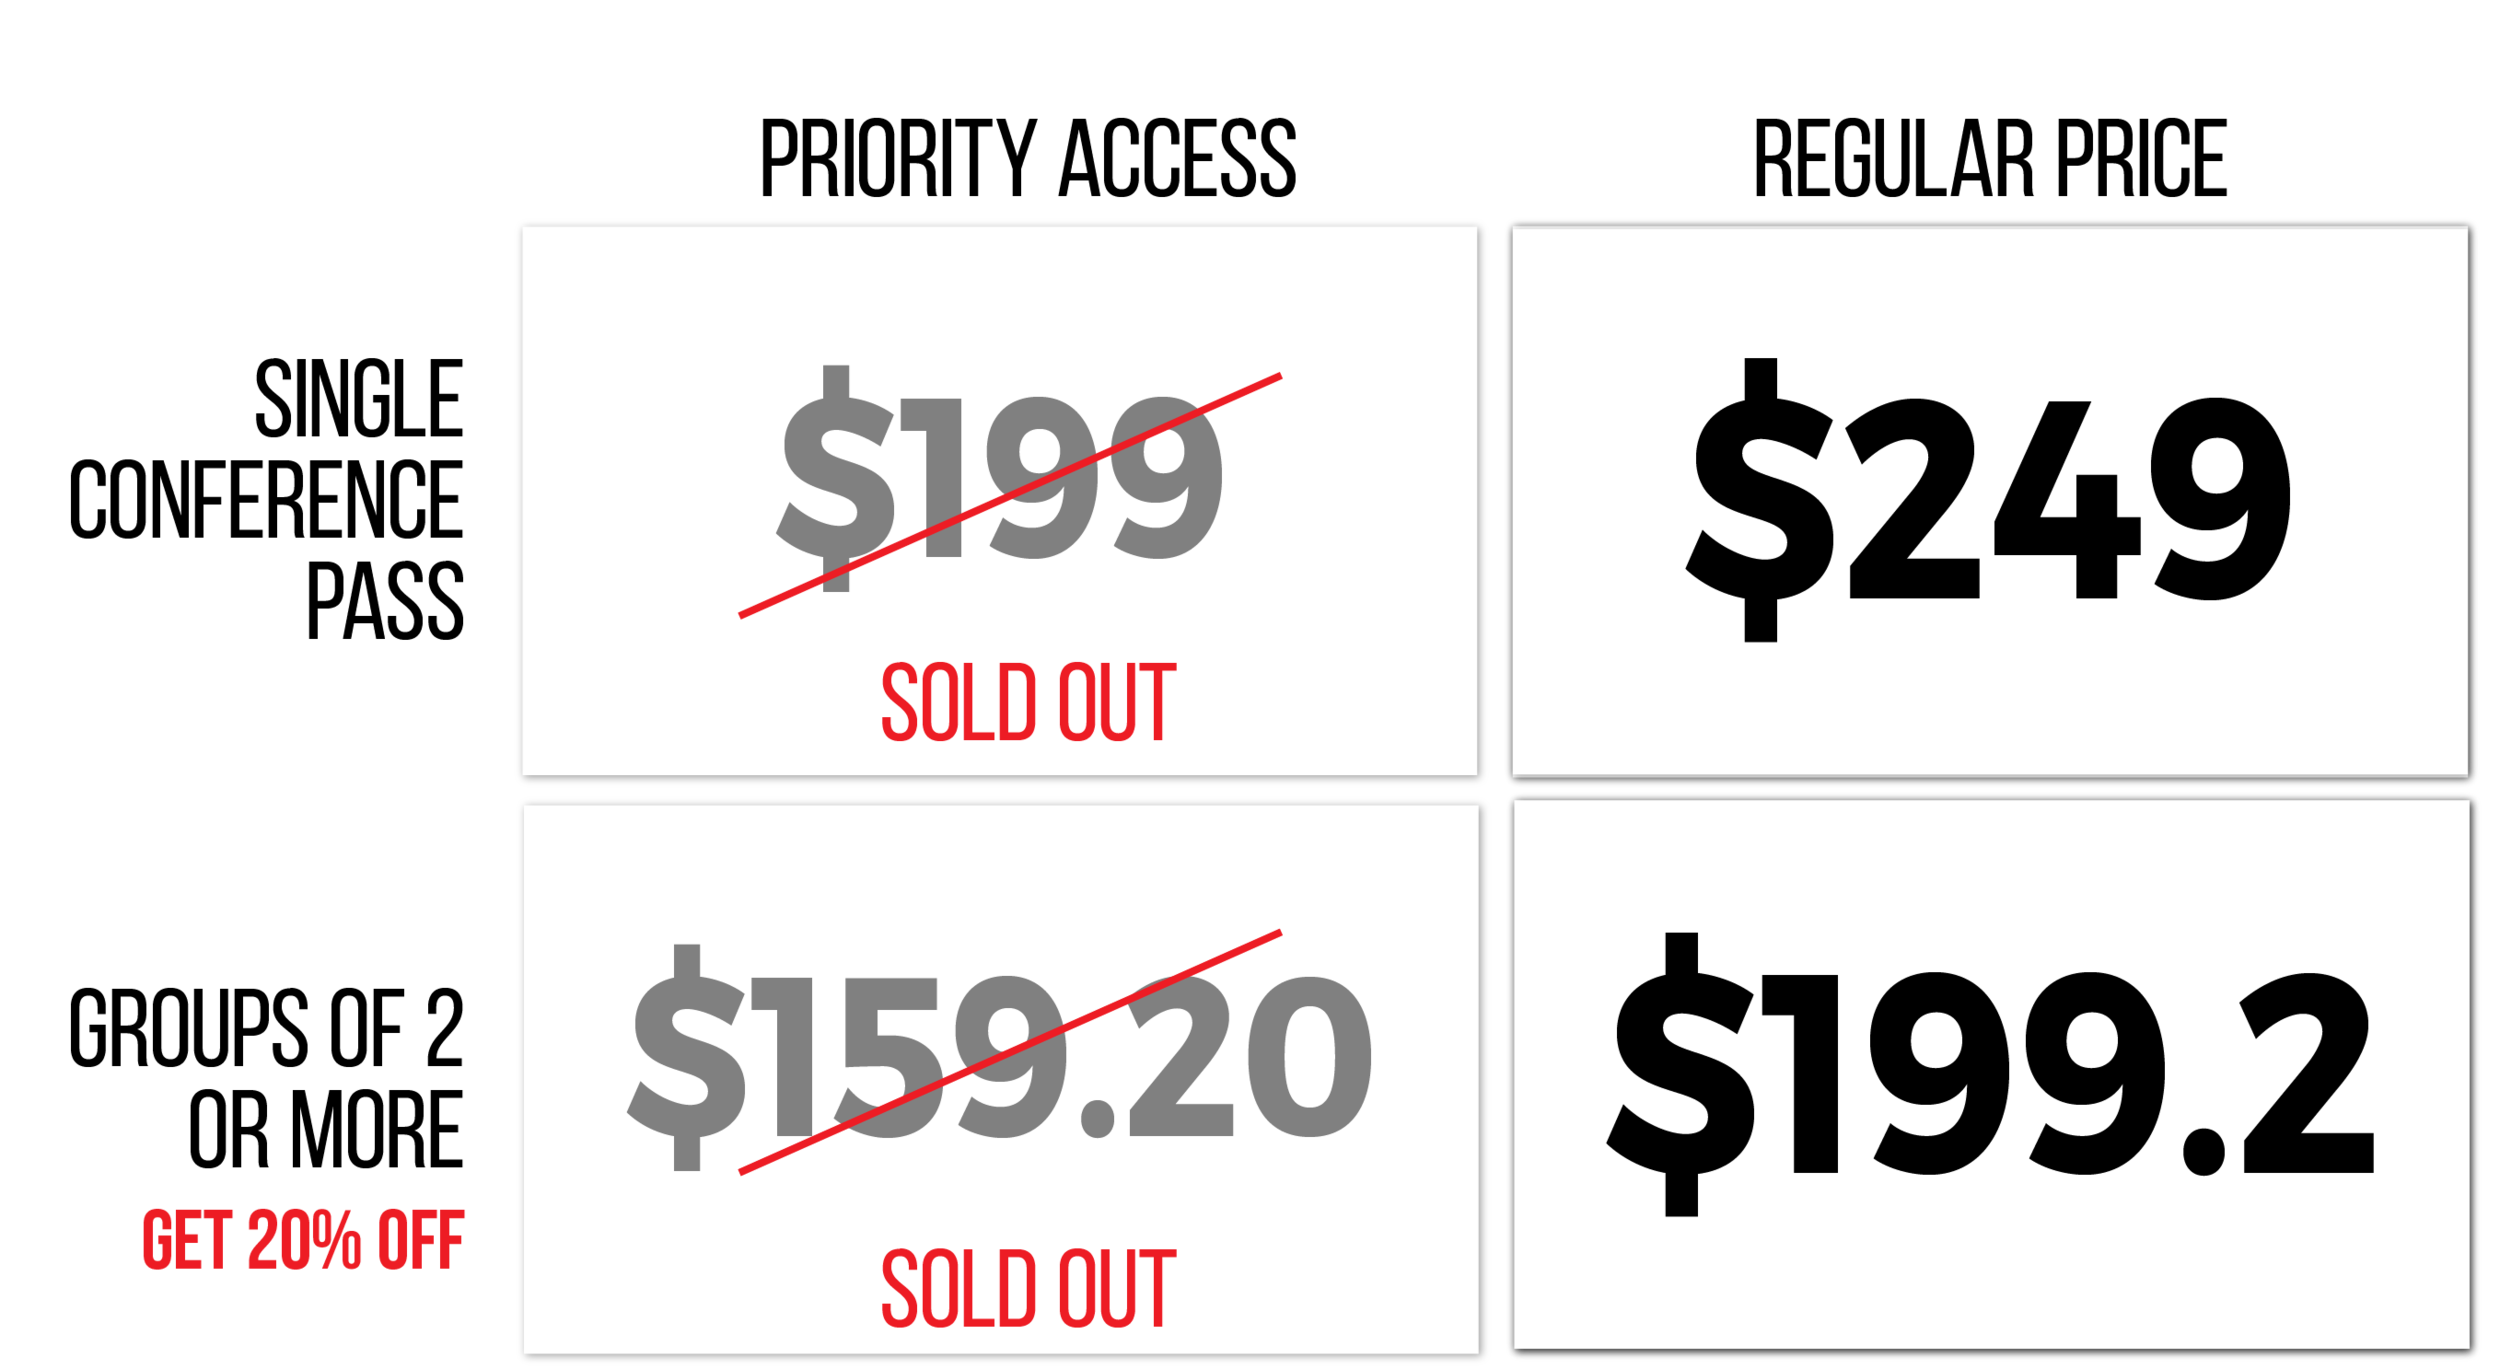 Standard-sold out.png